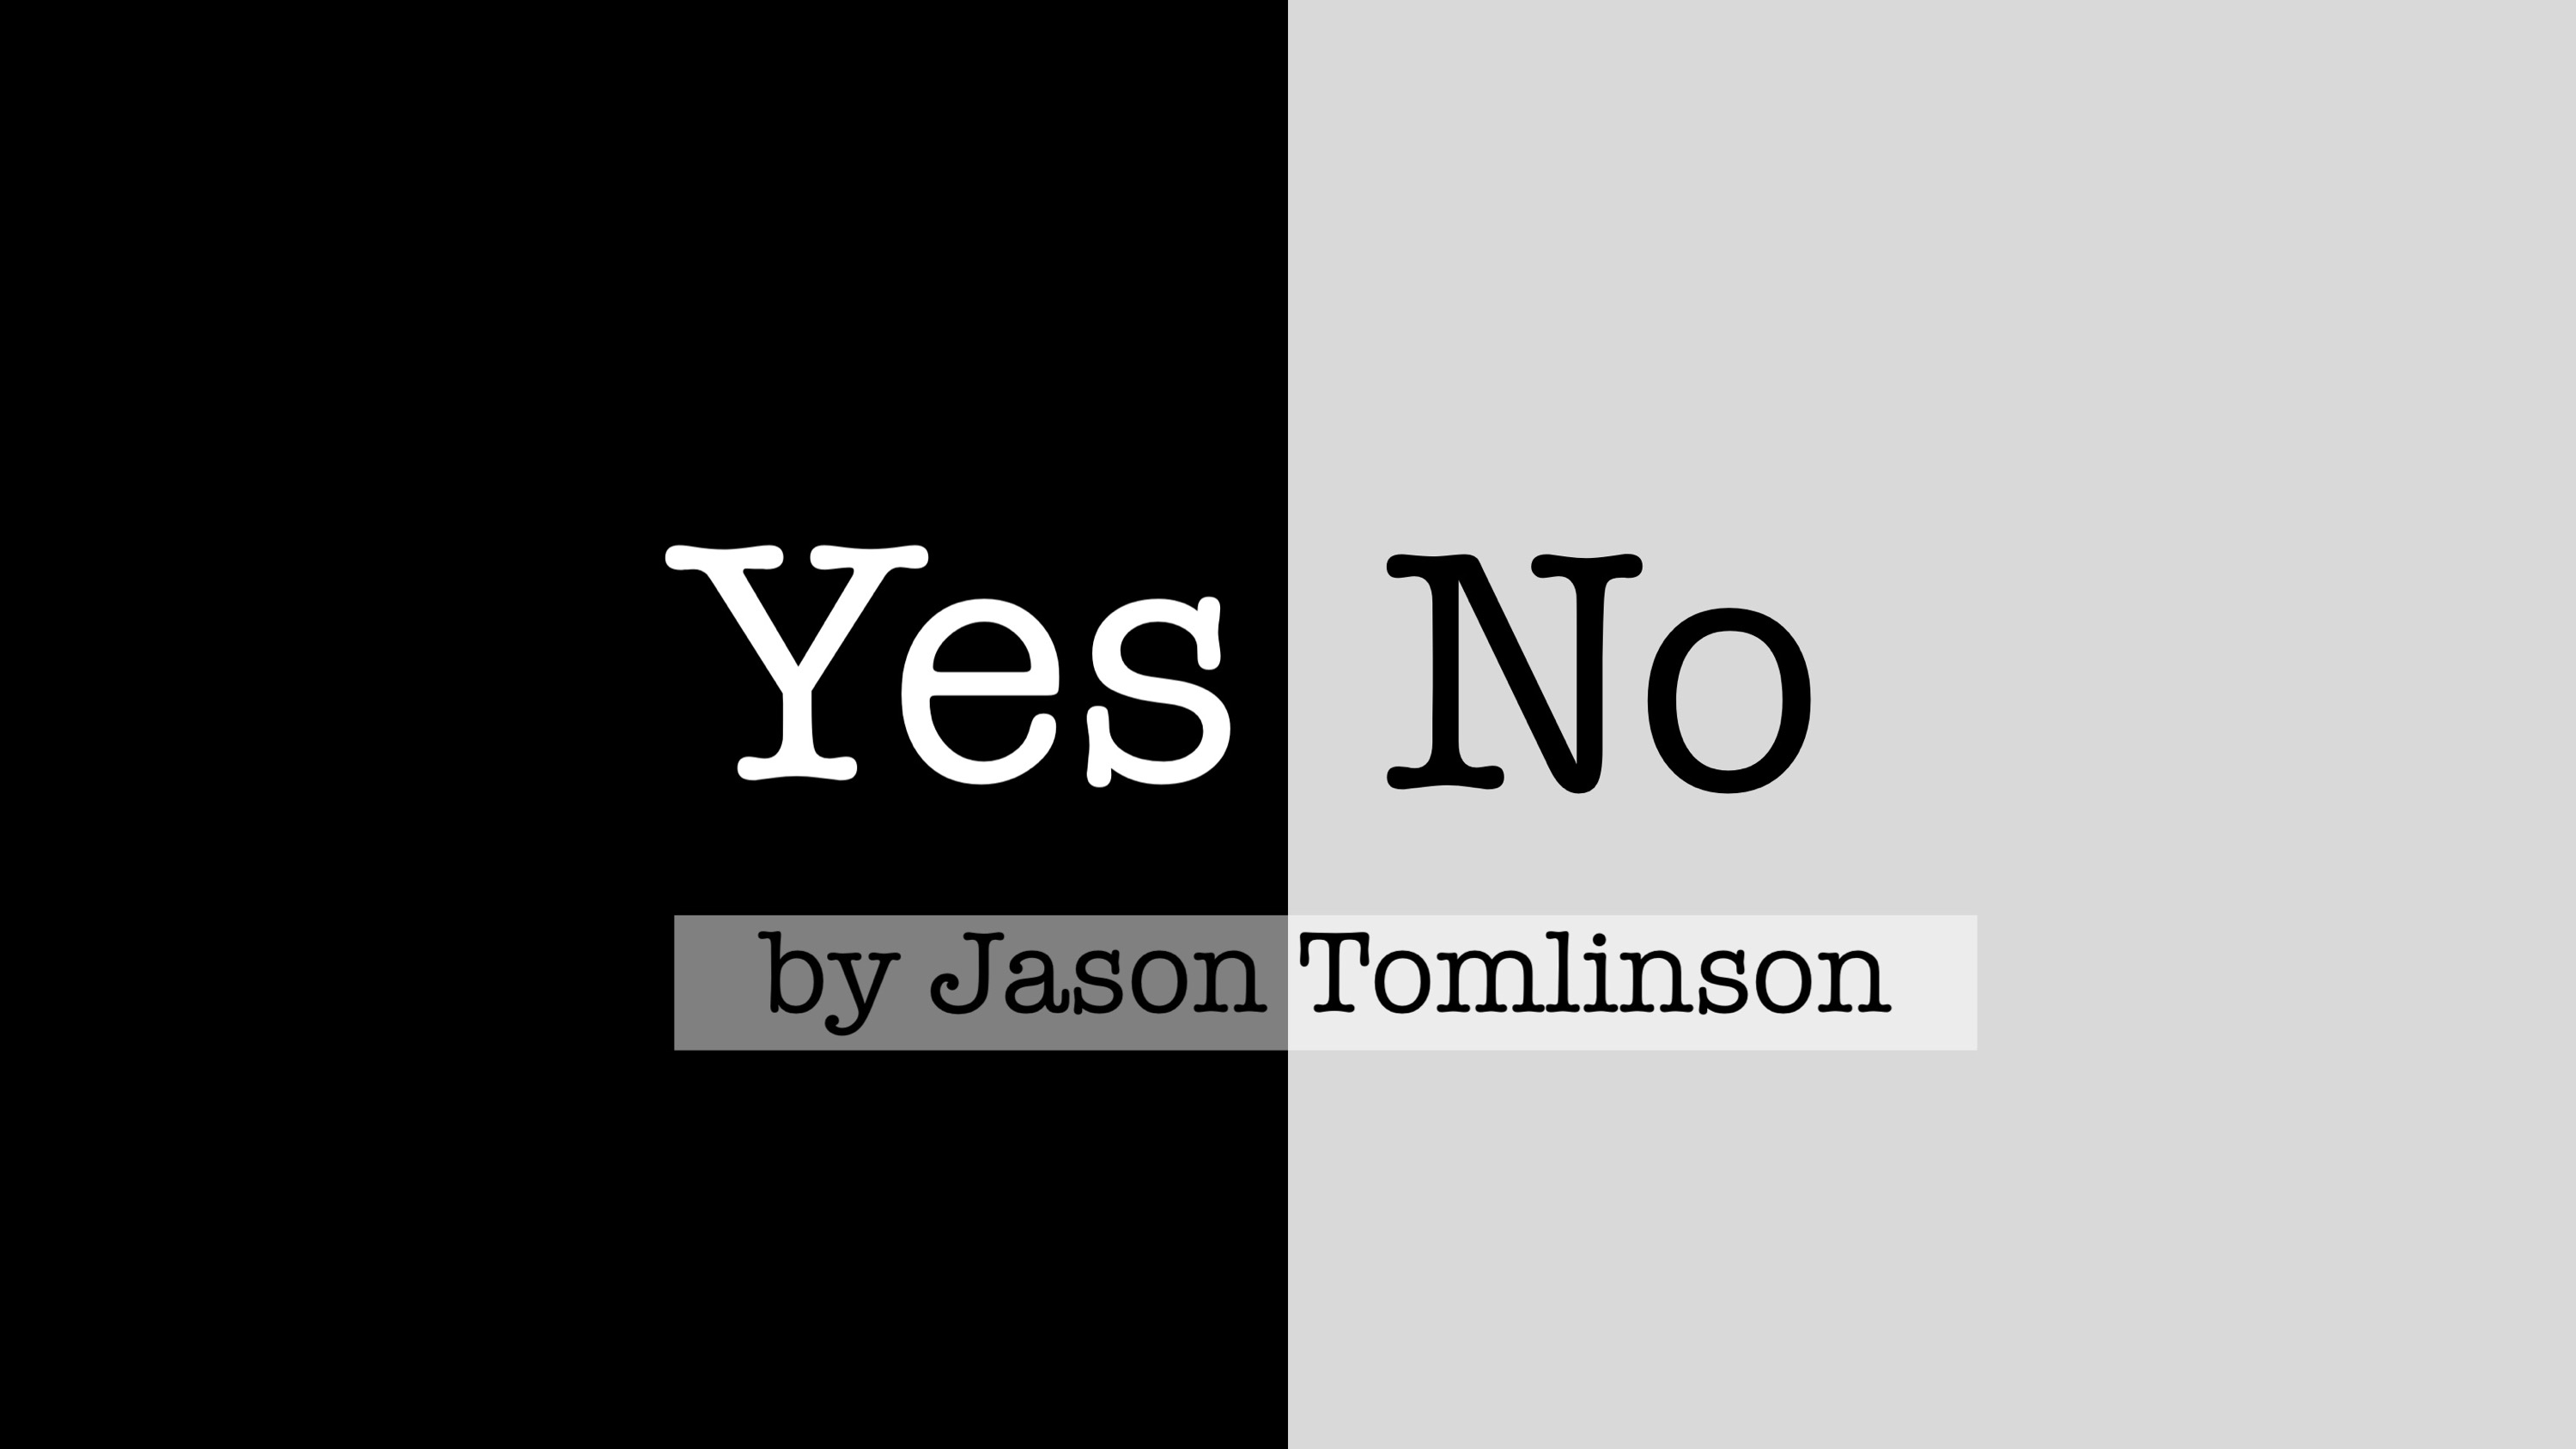 yes or no to bringing handphones Smartphones' usage by people and brings examples of those who refuse to use  smartphones  cellphones or smartphone are also substitutes to a home office   4 entertainment yes no f 27 4 texting yes yes i 42 4 conversation yes no c.